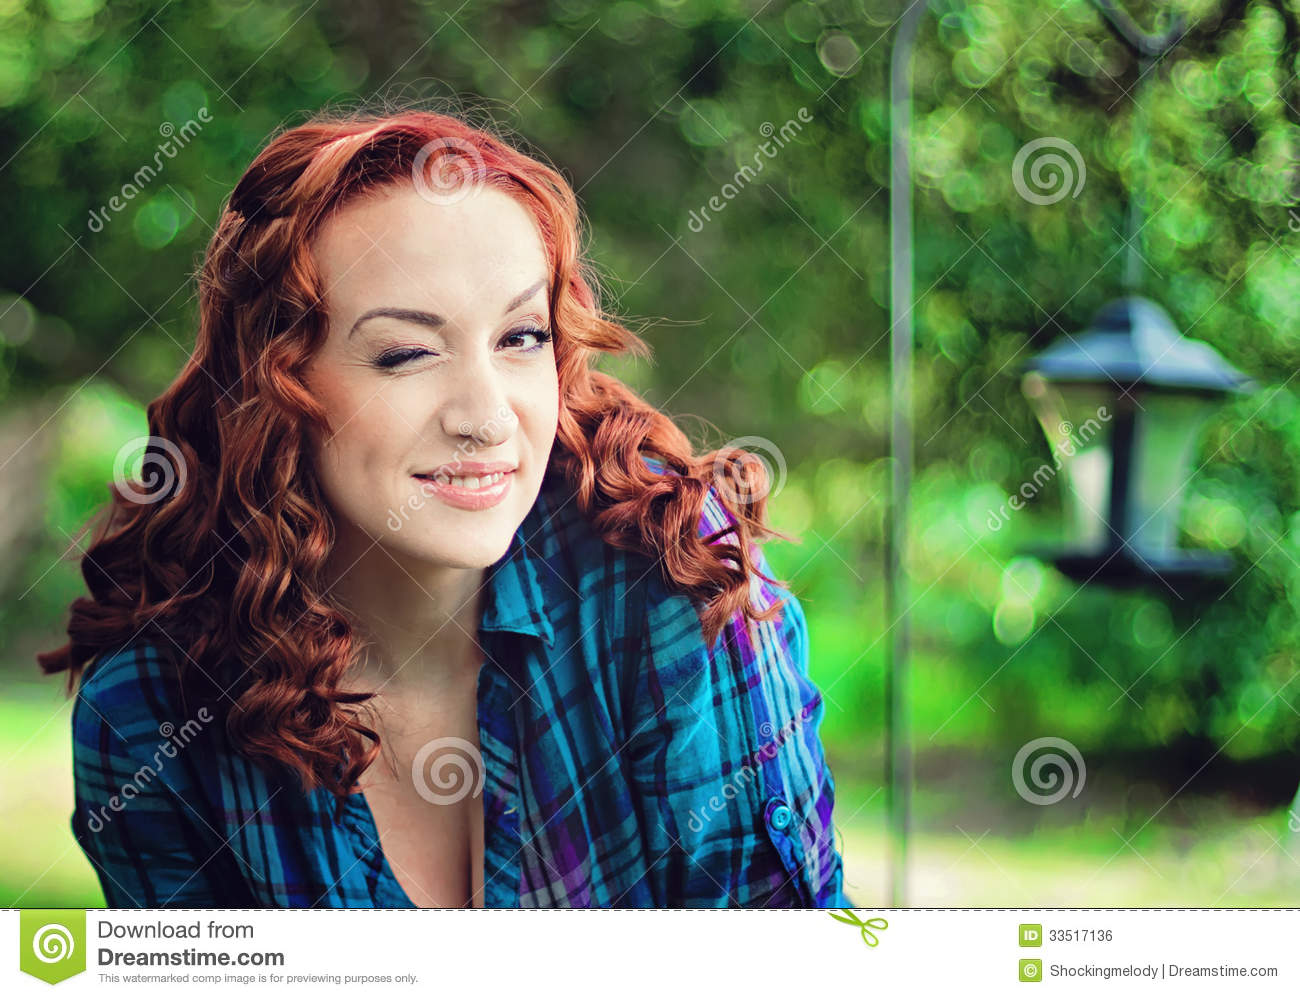 watching Redhead beauty outdoor